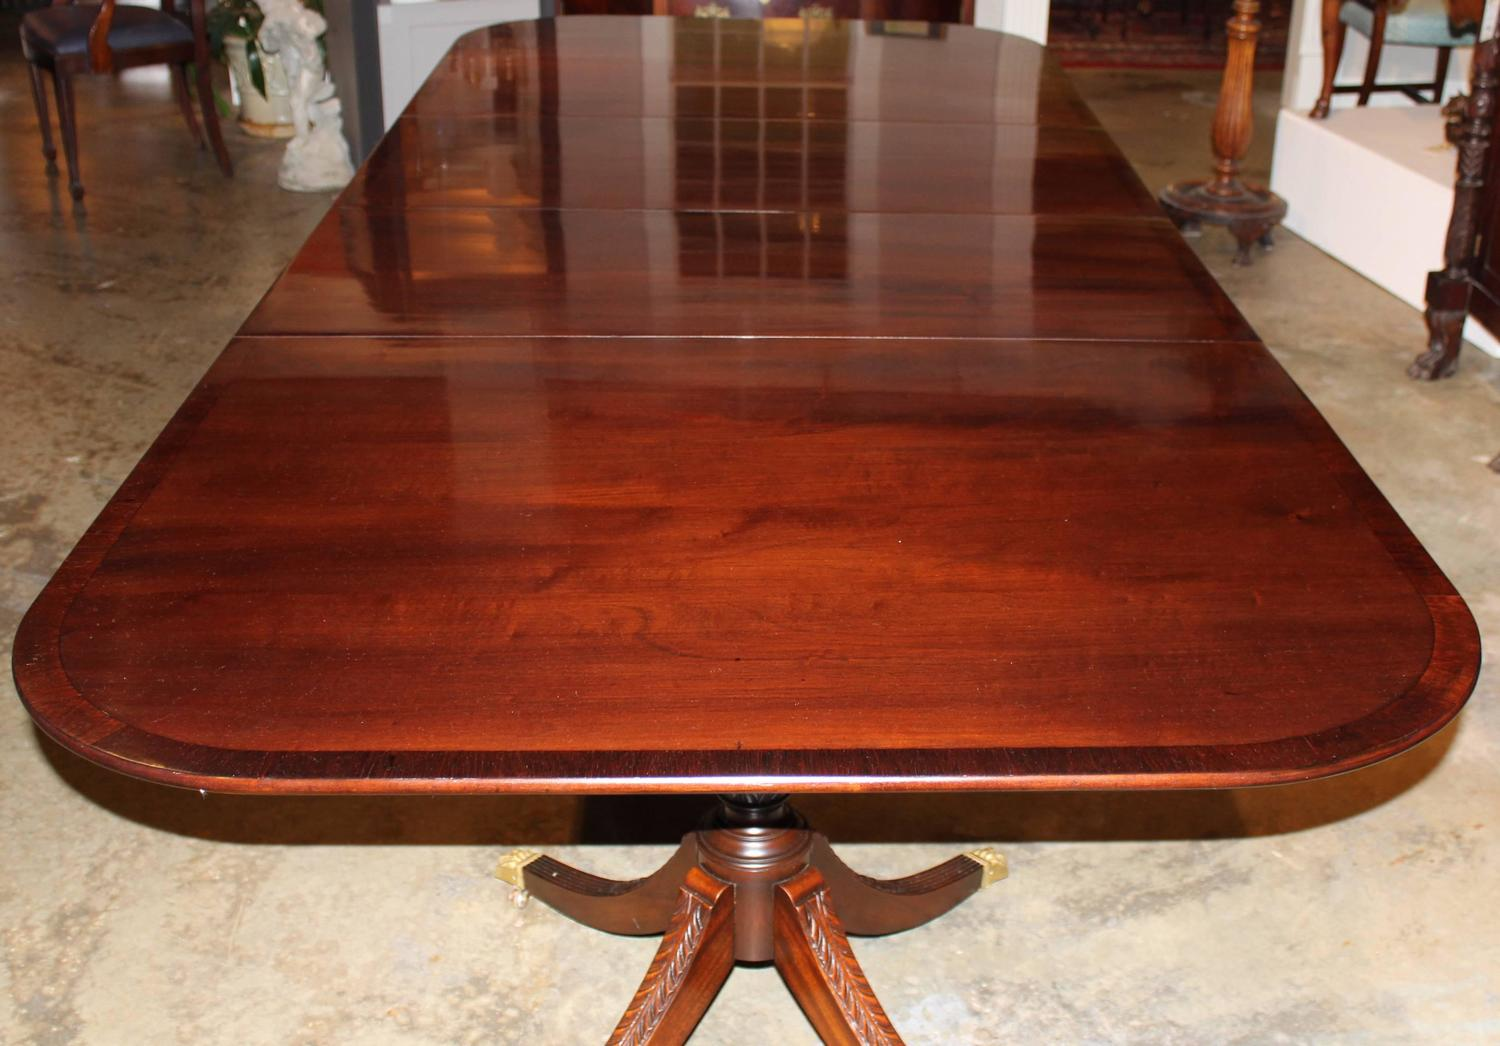 Mahogany Double Pedestal Dining Table By Beacon Hill For Sale At 1stdibs